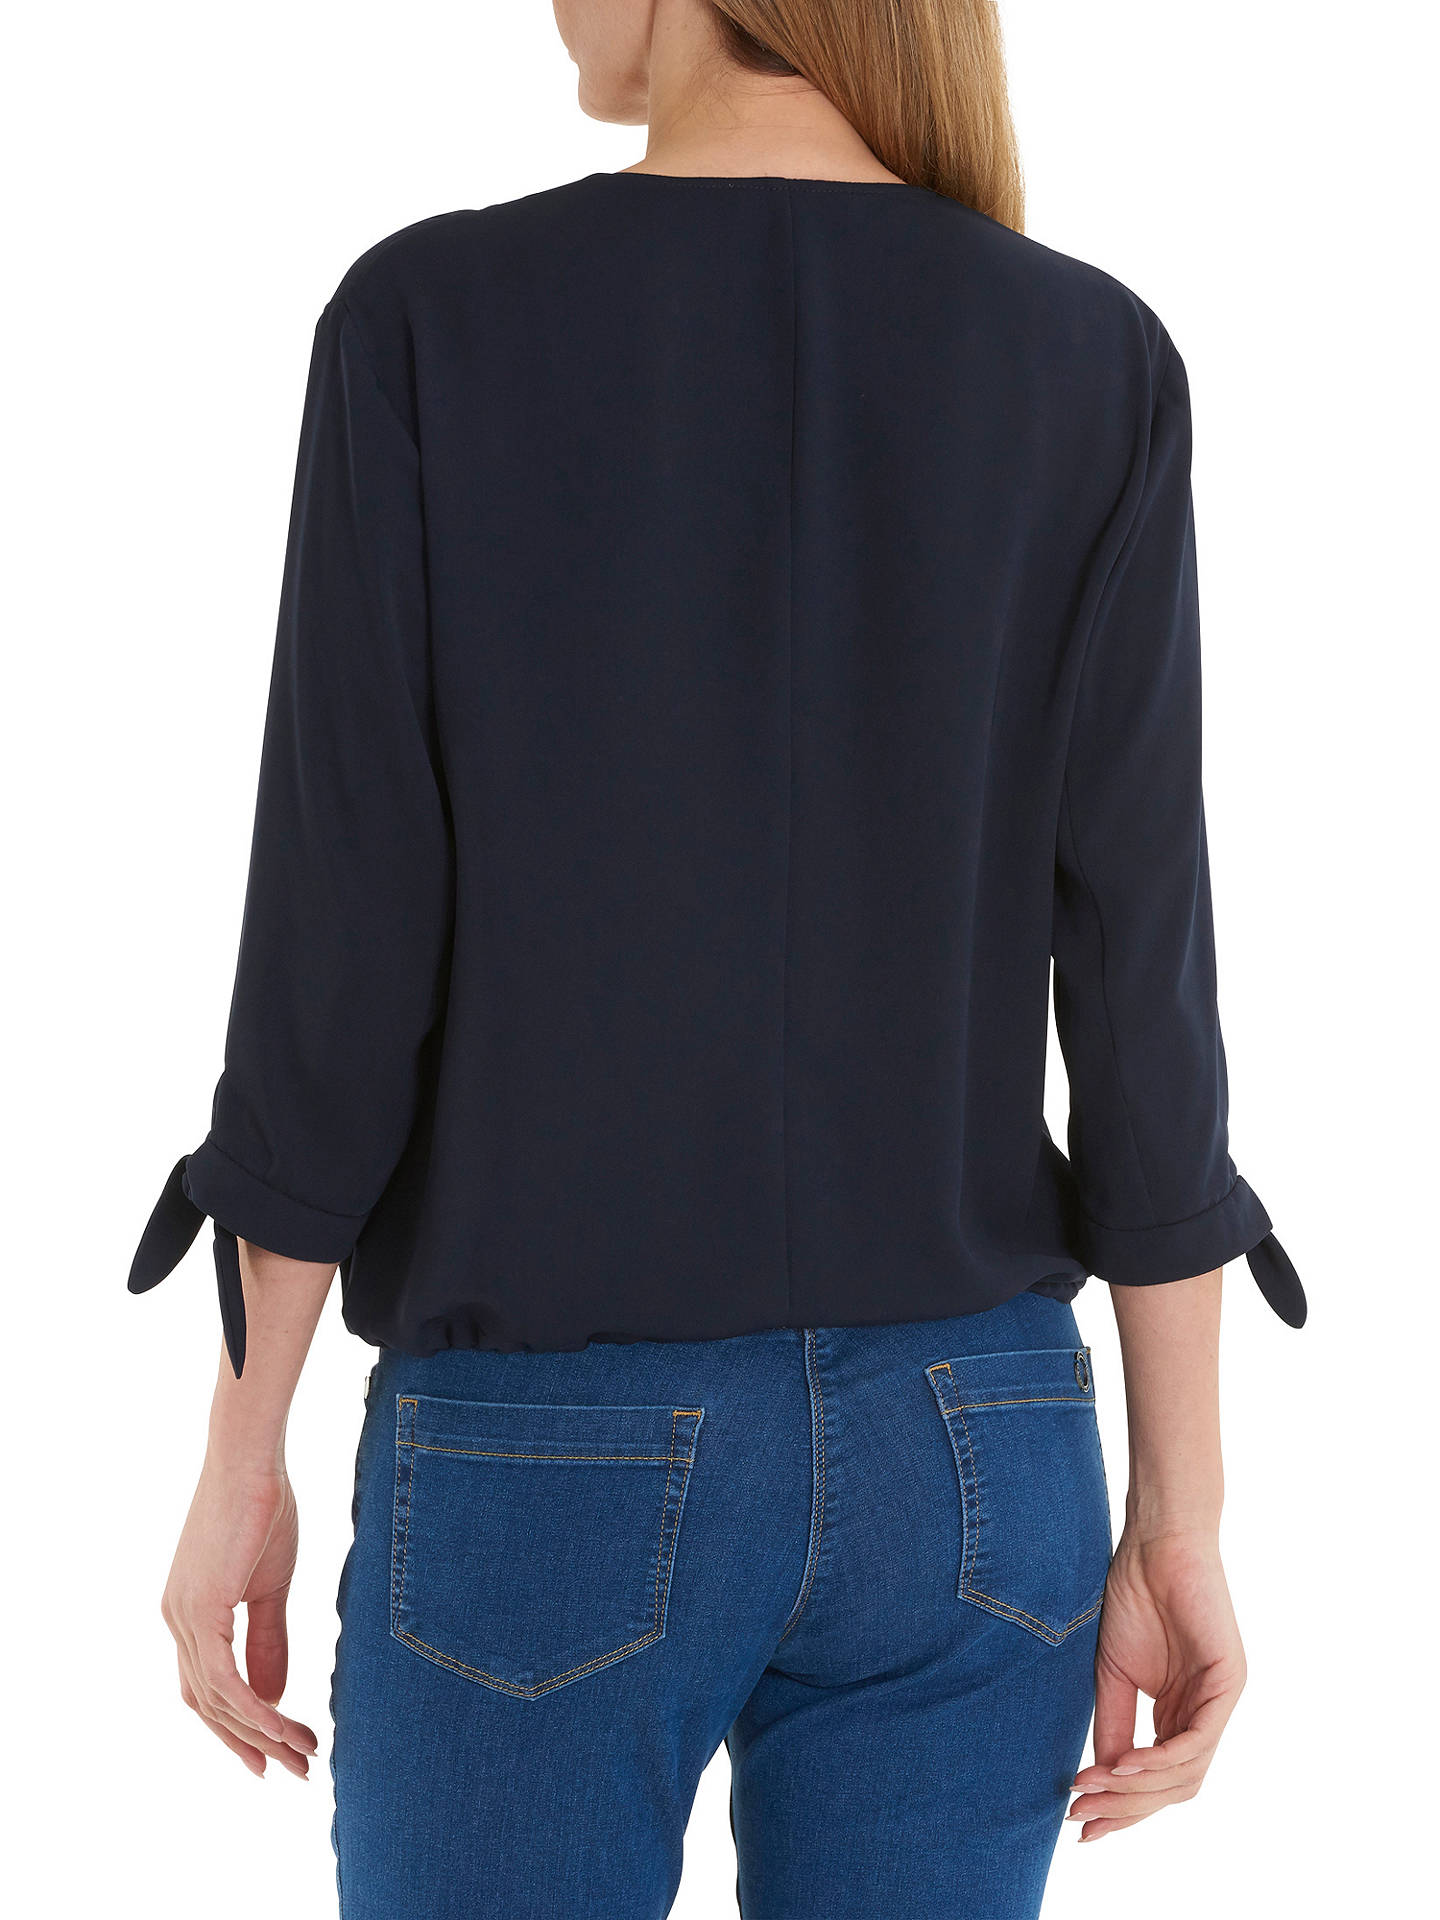 BuyBetty Barclay Unlined Blouson Jacket, Dark Sky, 10 Online at johnlewis.com